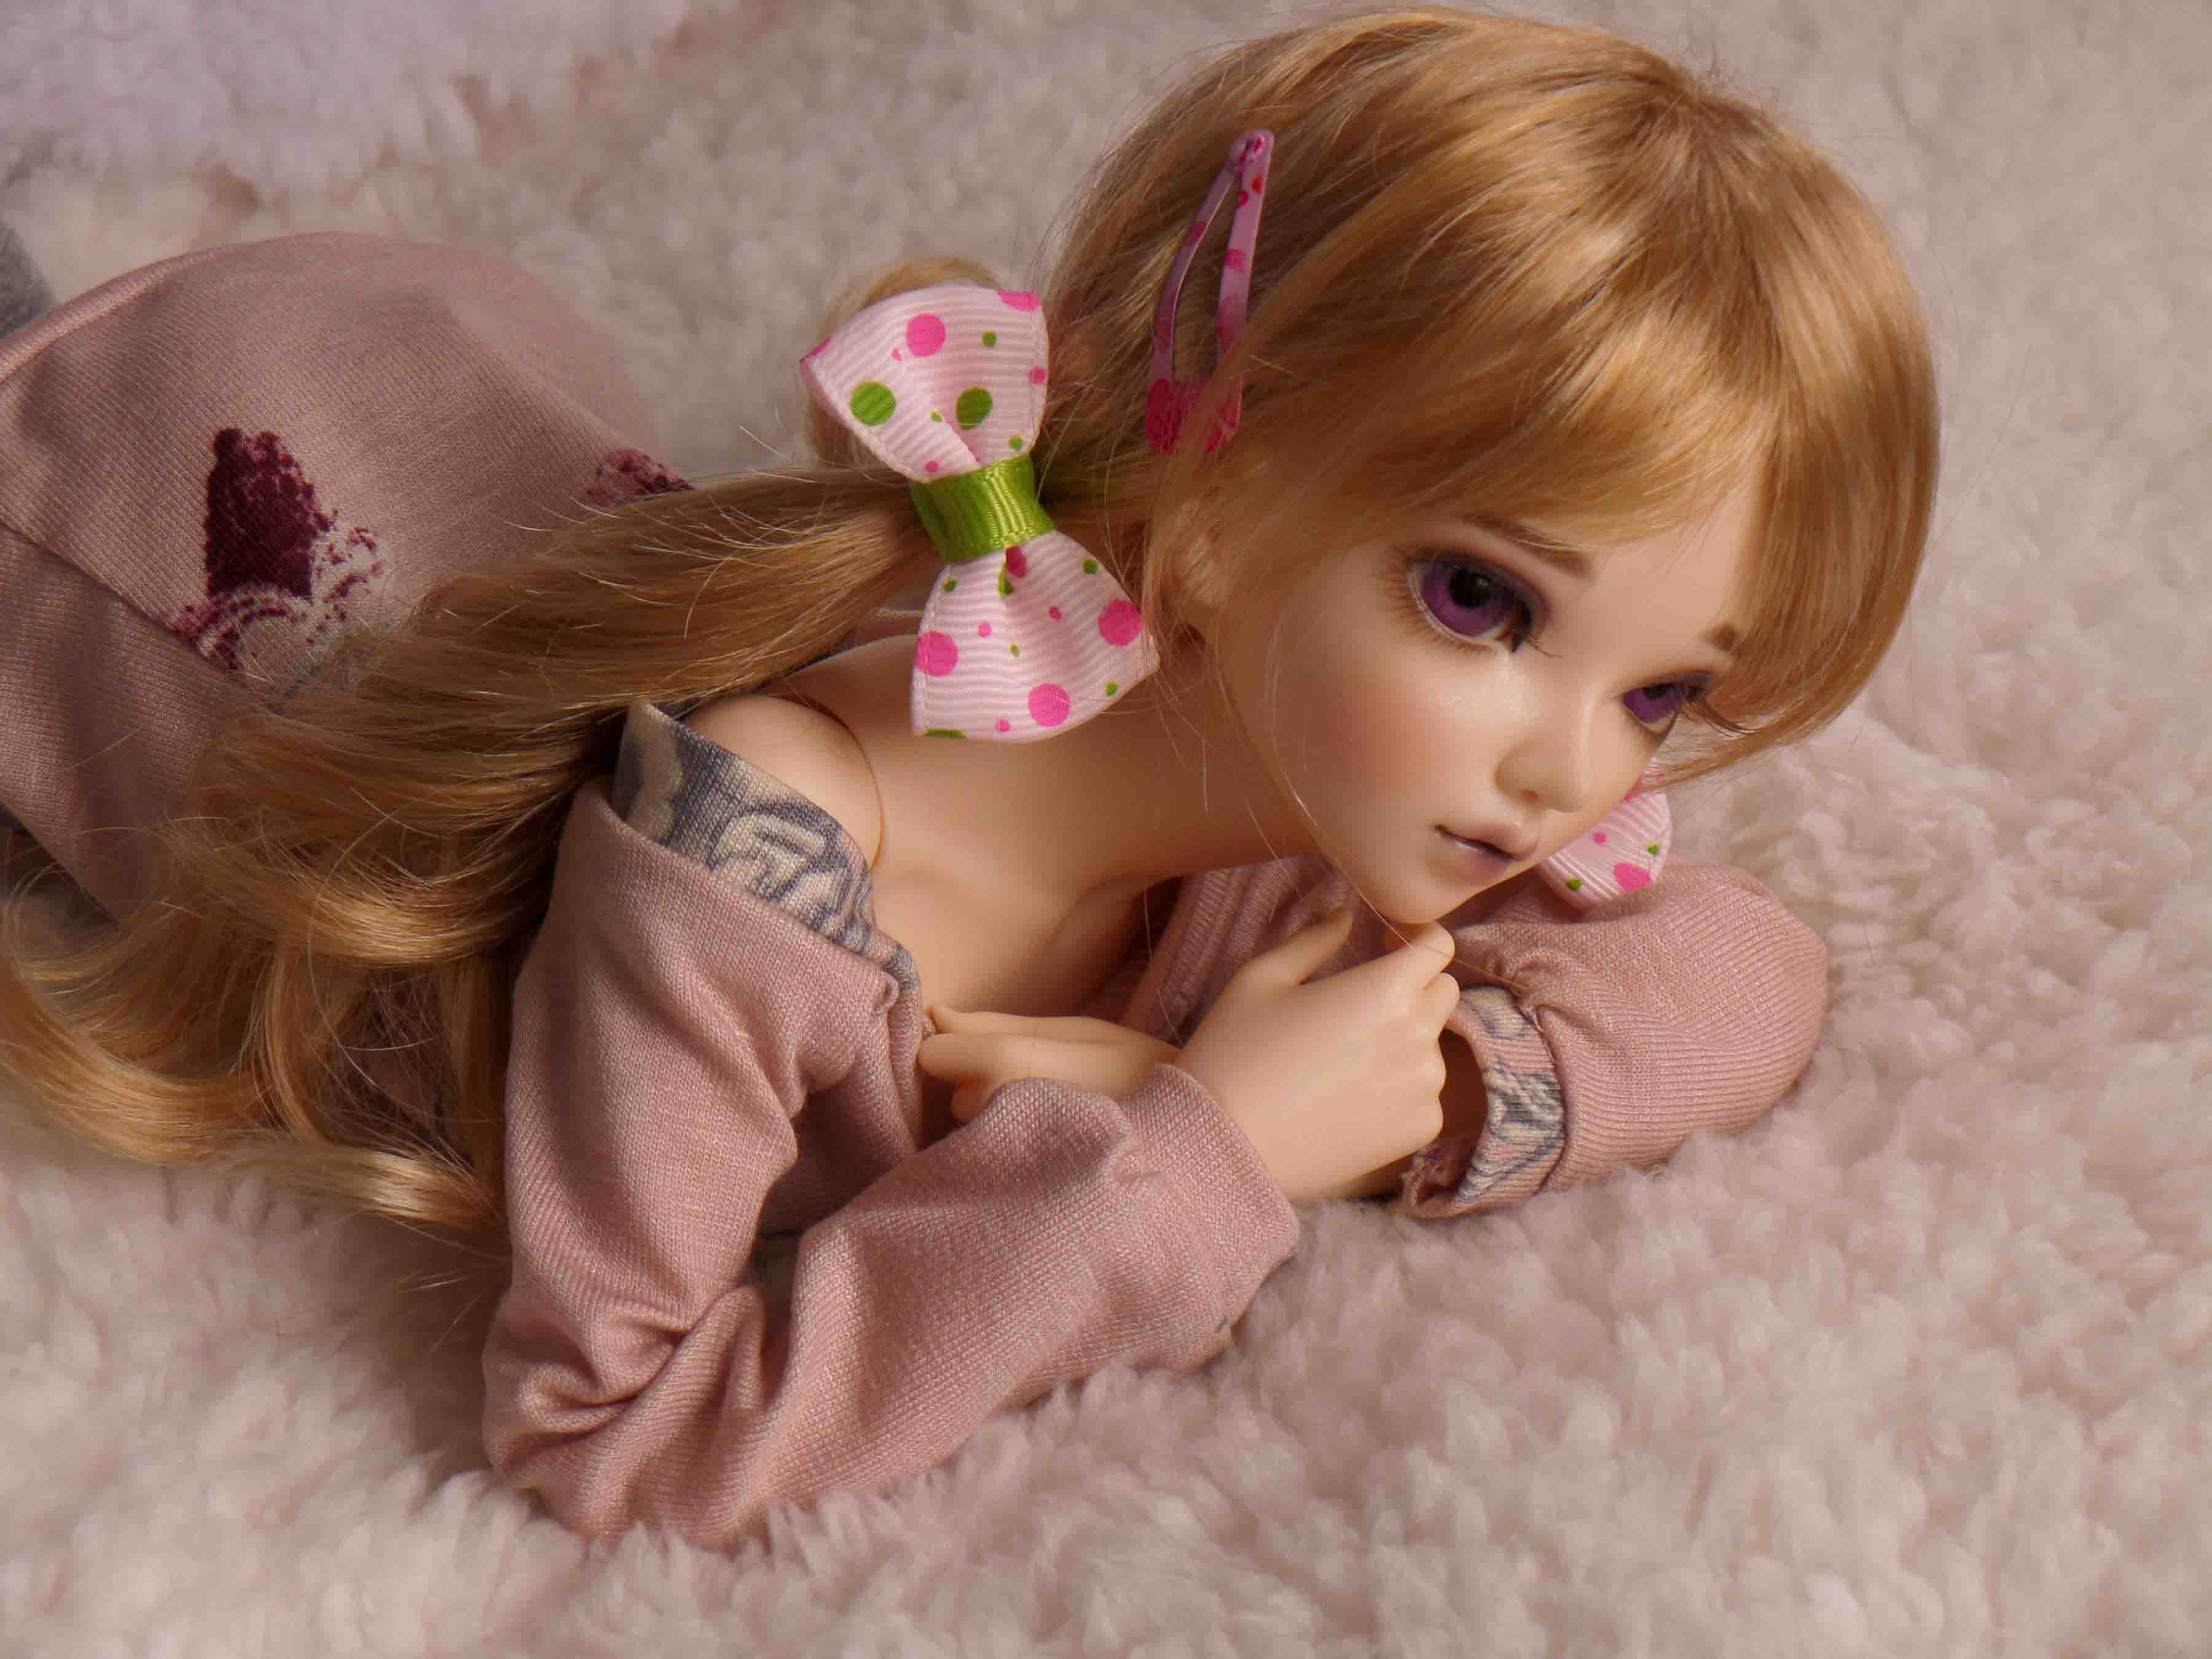 Barbie Doll Wallpaper Free Download